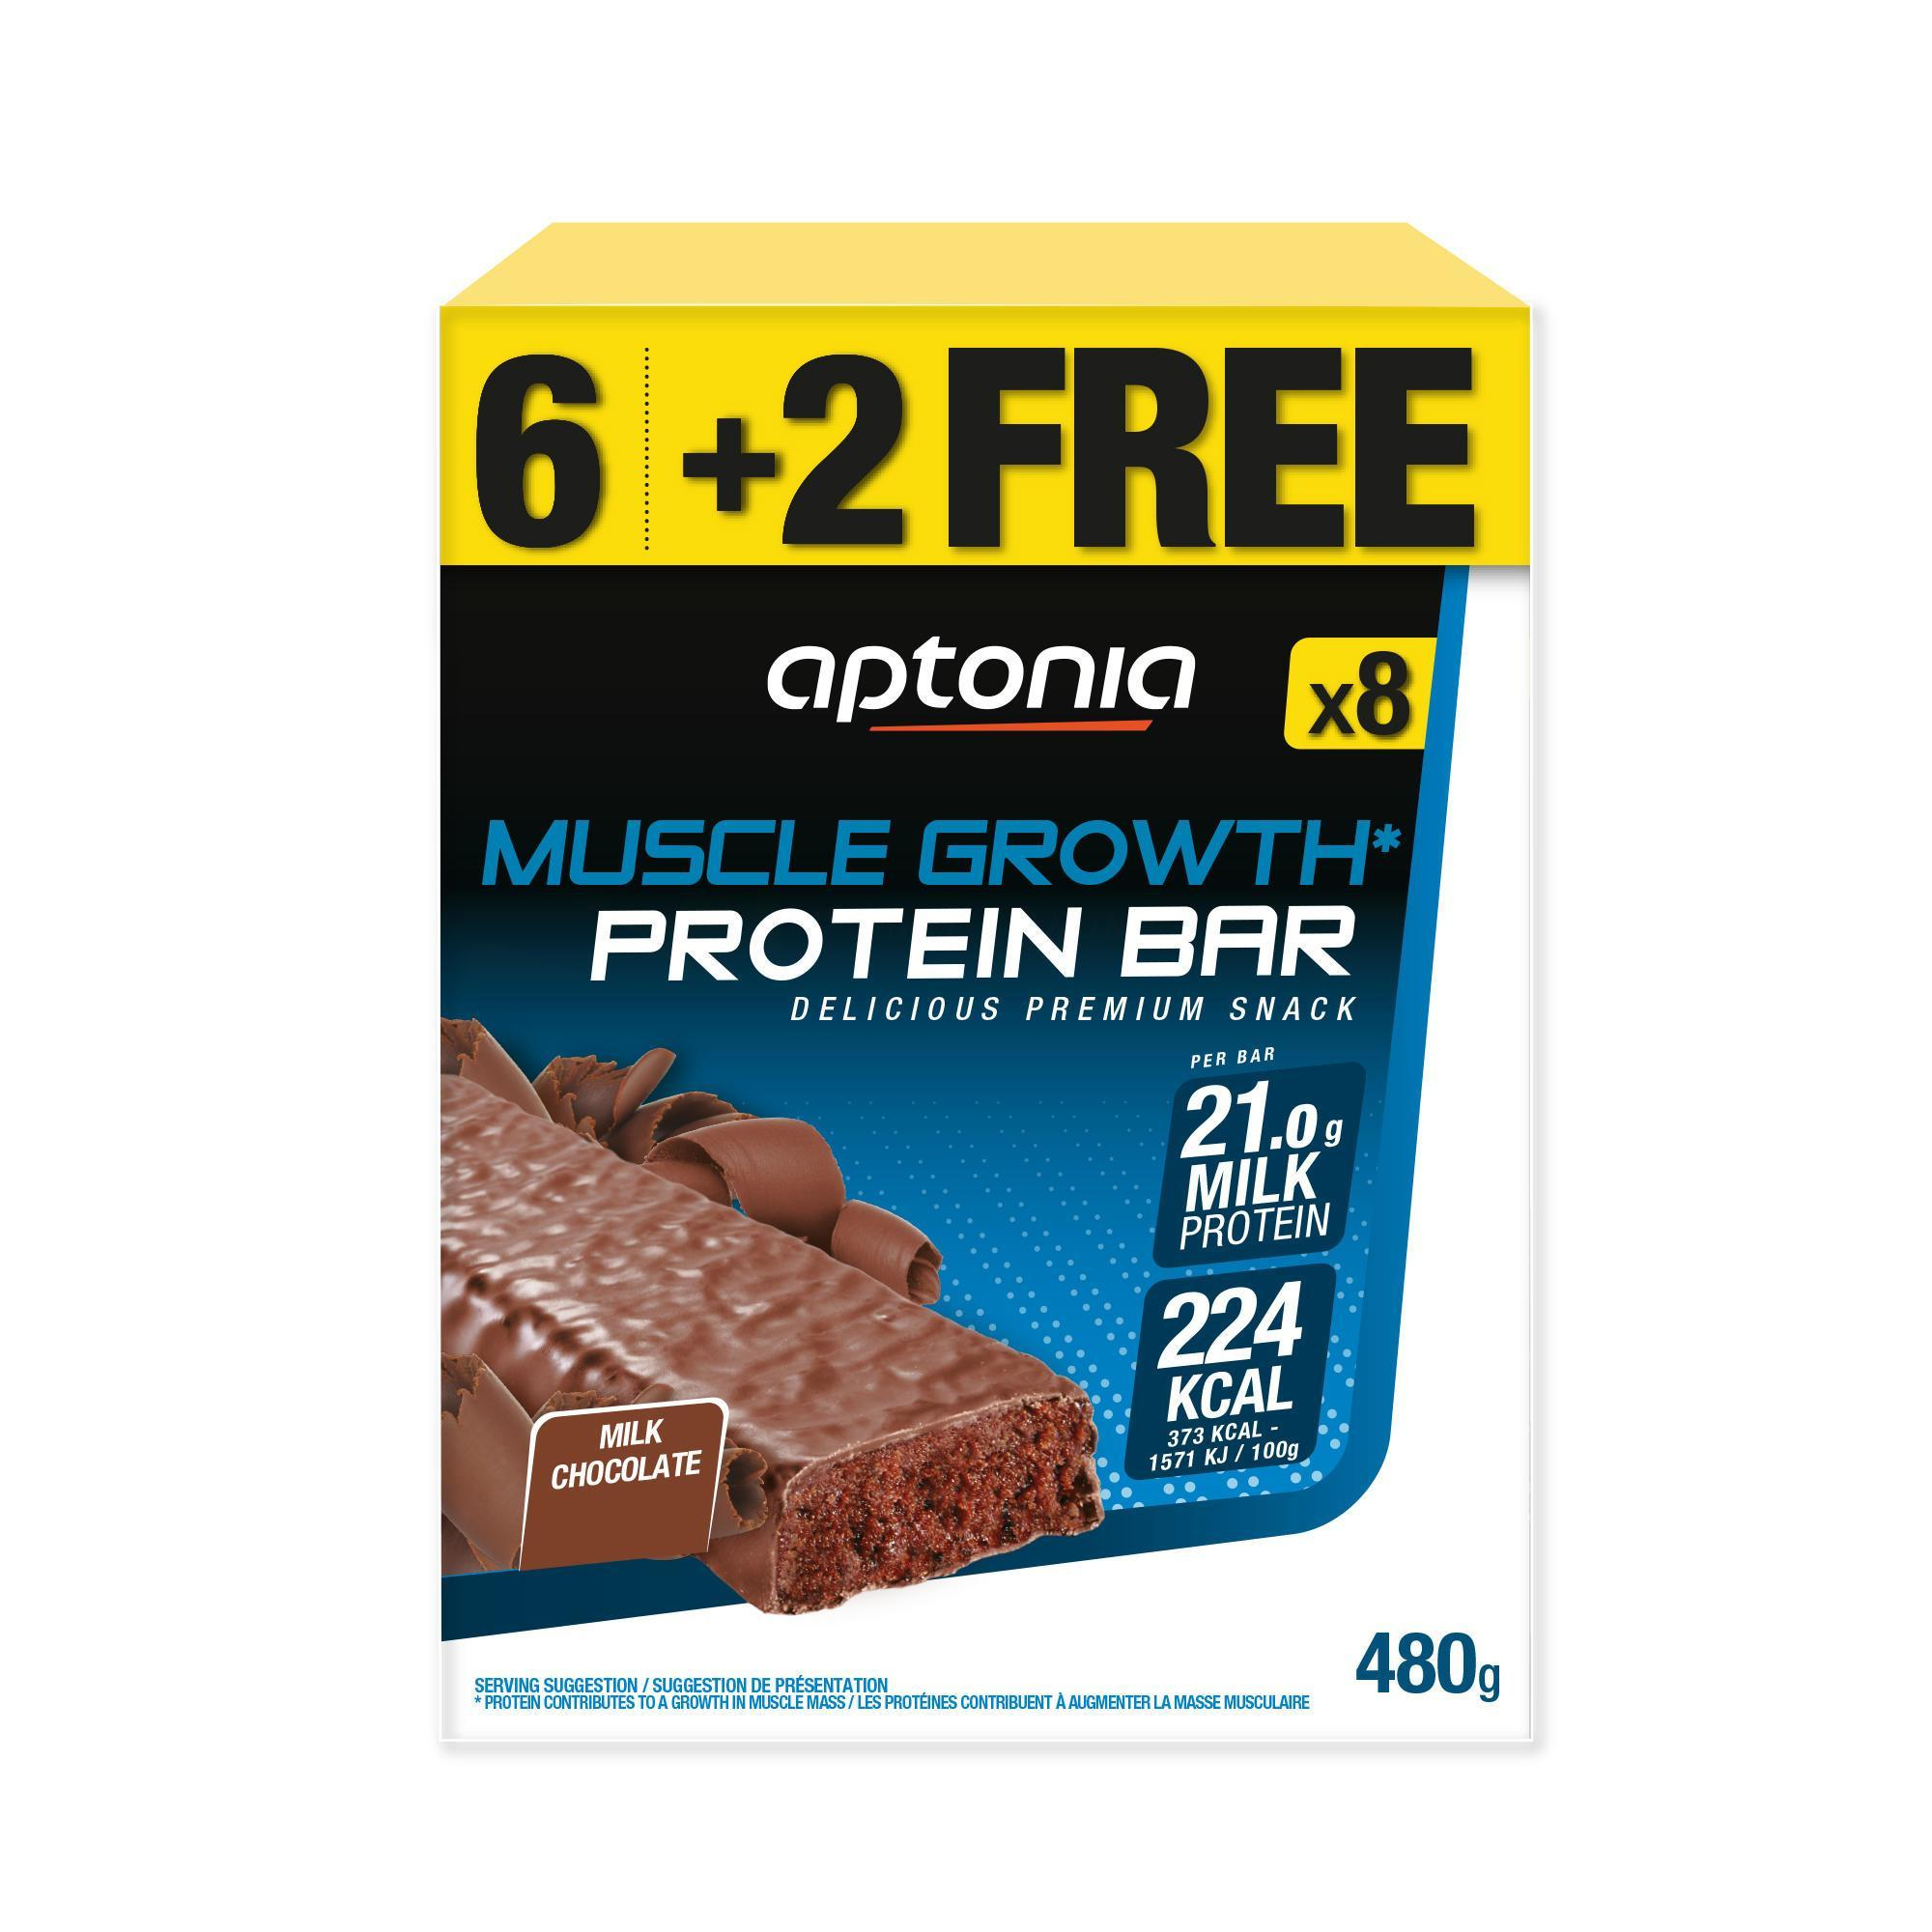 Barre de prot ines muscle growth chocolat 4x60g 6 2free aptonia - Chaufferette main decathlon ...